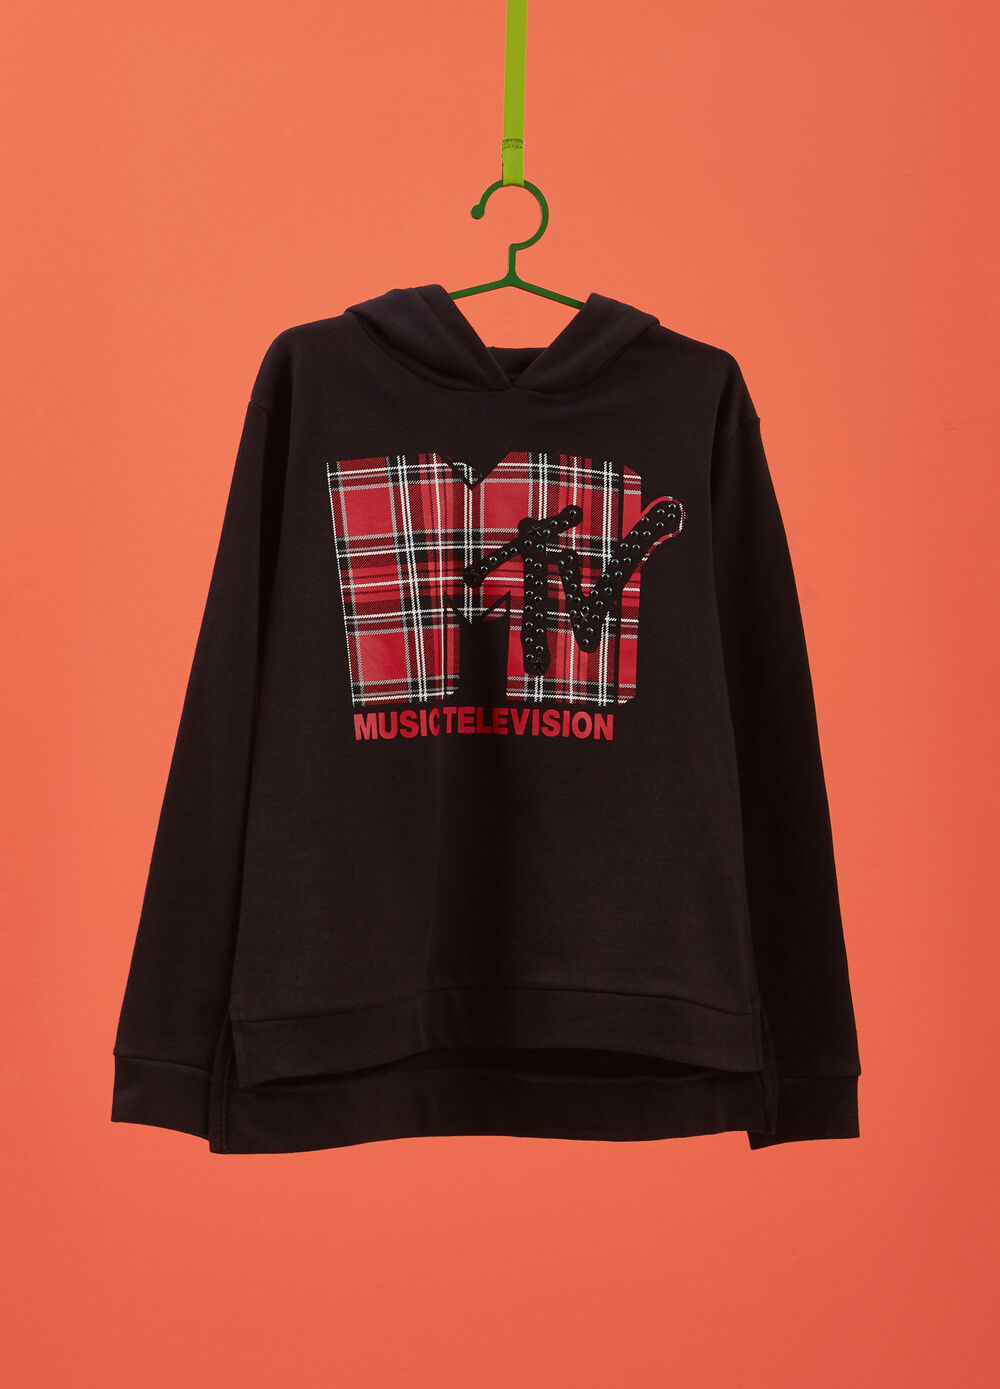 100% cotton sweatshirt with MTV print and studs